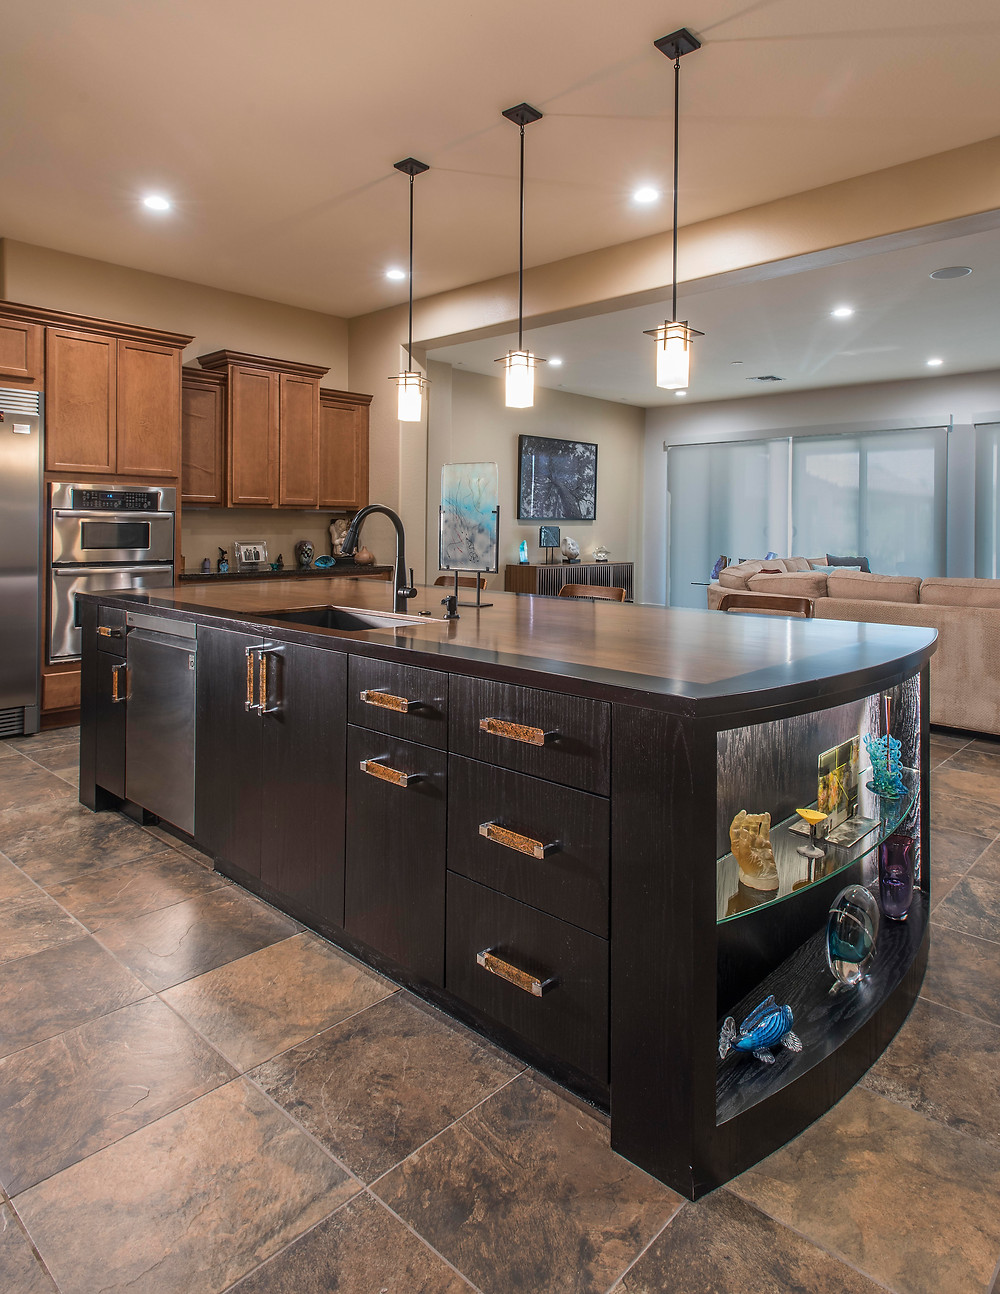 Solid wood counter top